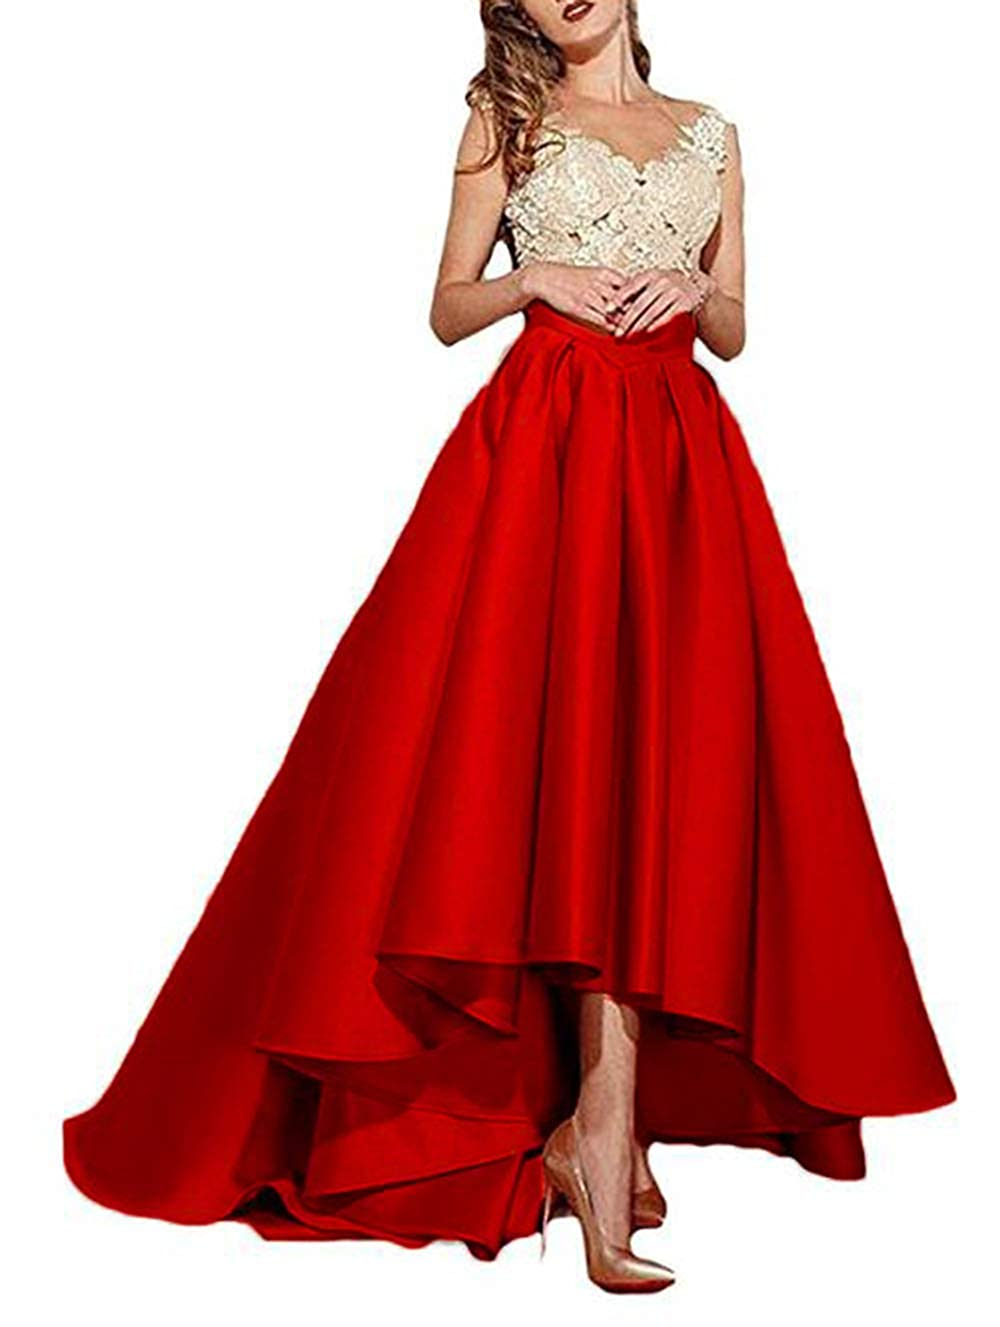 Red alilith.Z Sexy Lace Appliques Prom Dresses High Low Formal Evening Dresses Party Gowns for Women